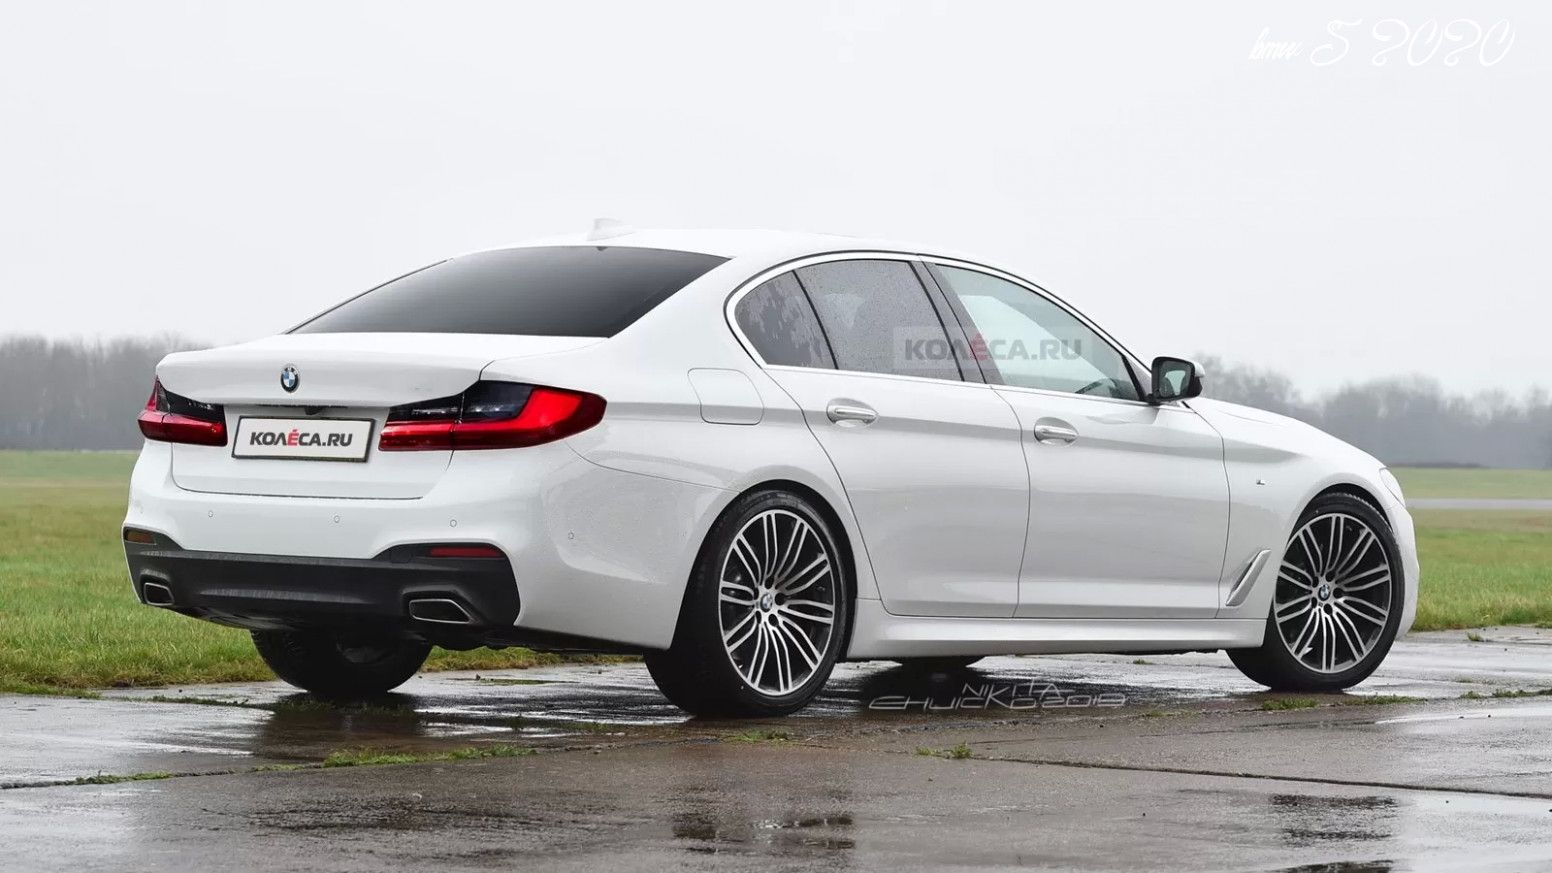 Bmw 5 2020 Exterior And Interior In 2020 Bmw Series Bmw Car Review